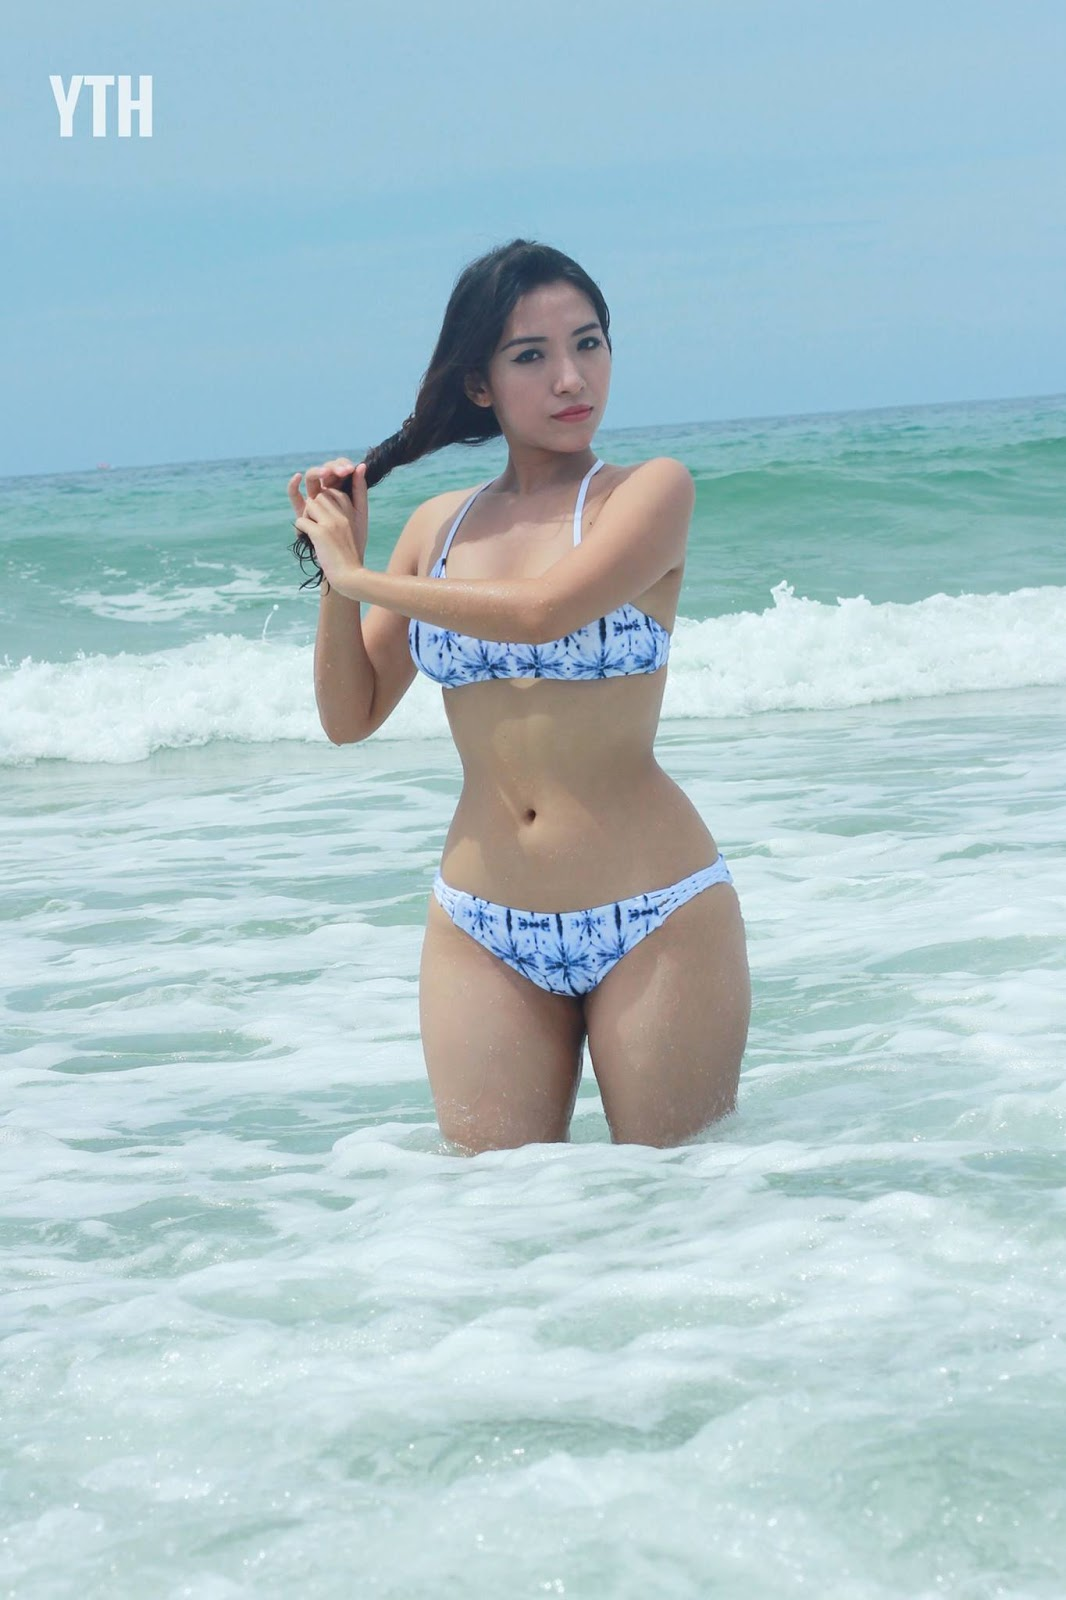 Nang Mwe San At The Beach and Swimsuit Fashion Photoshoot